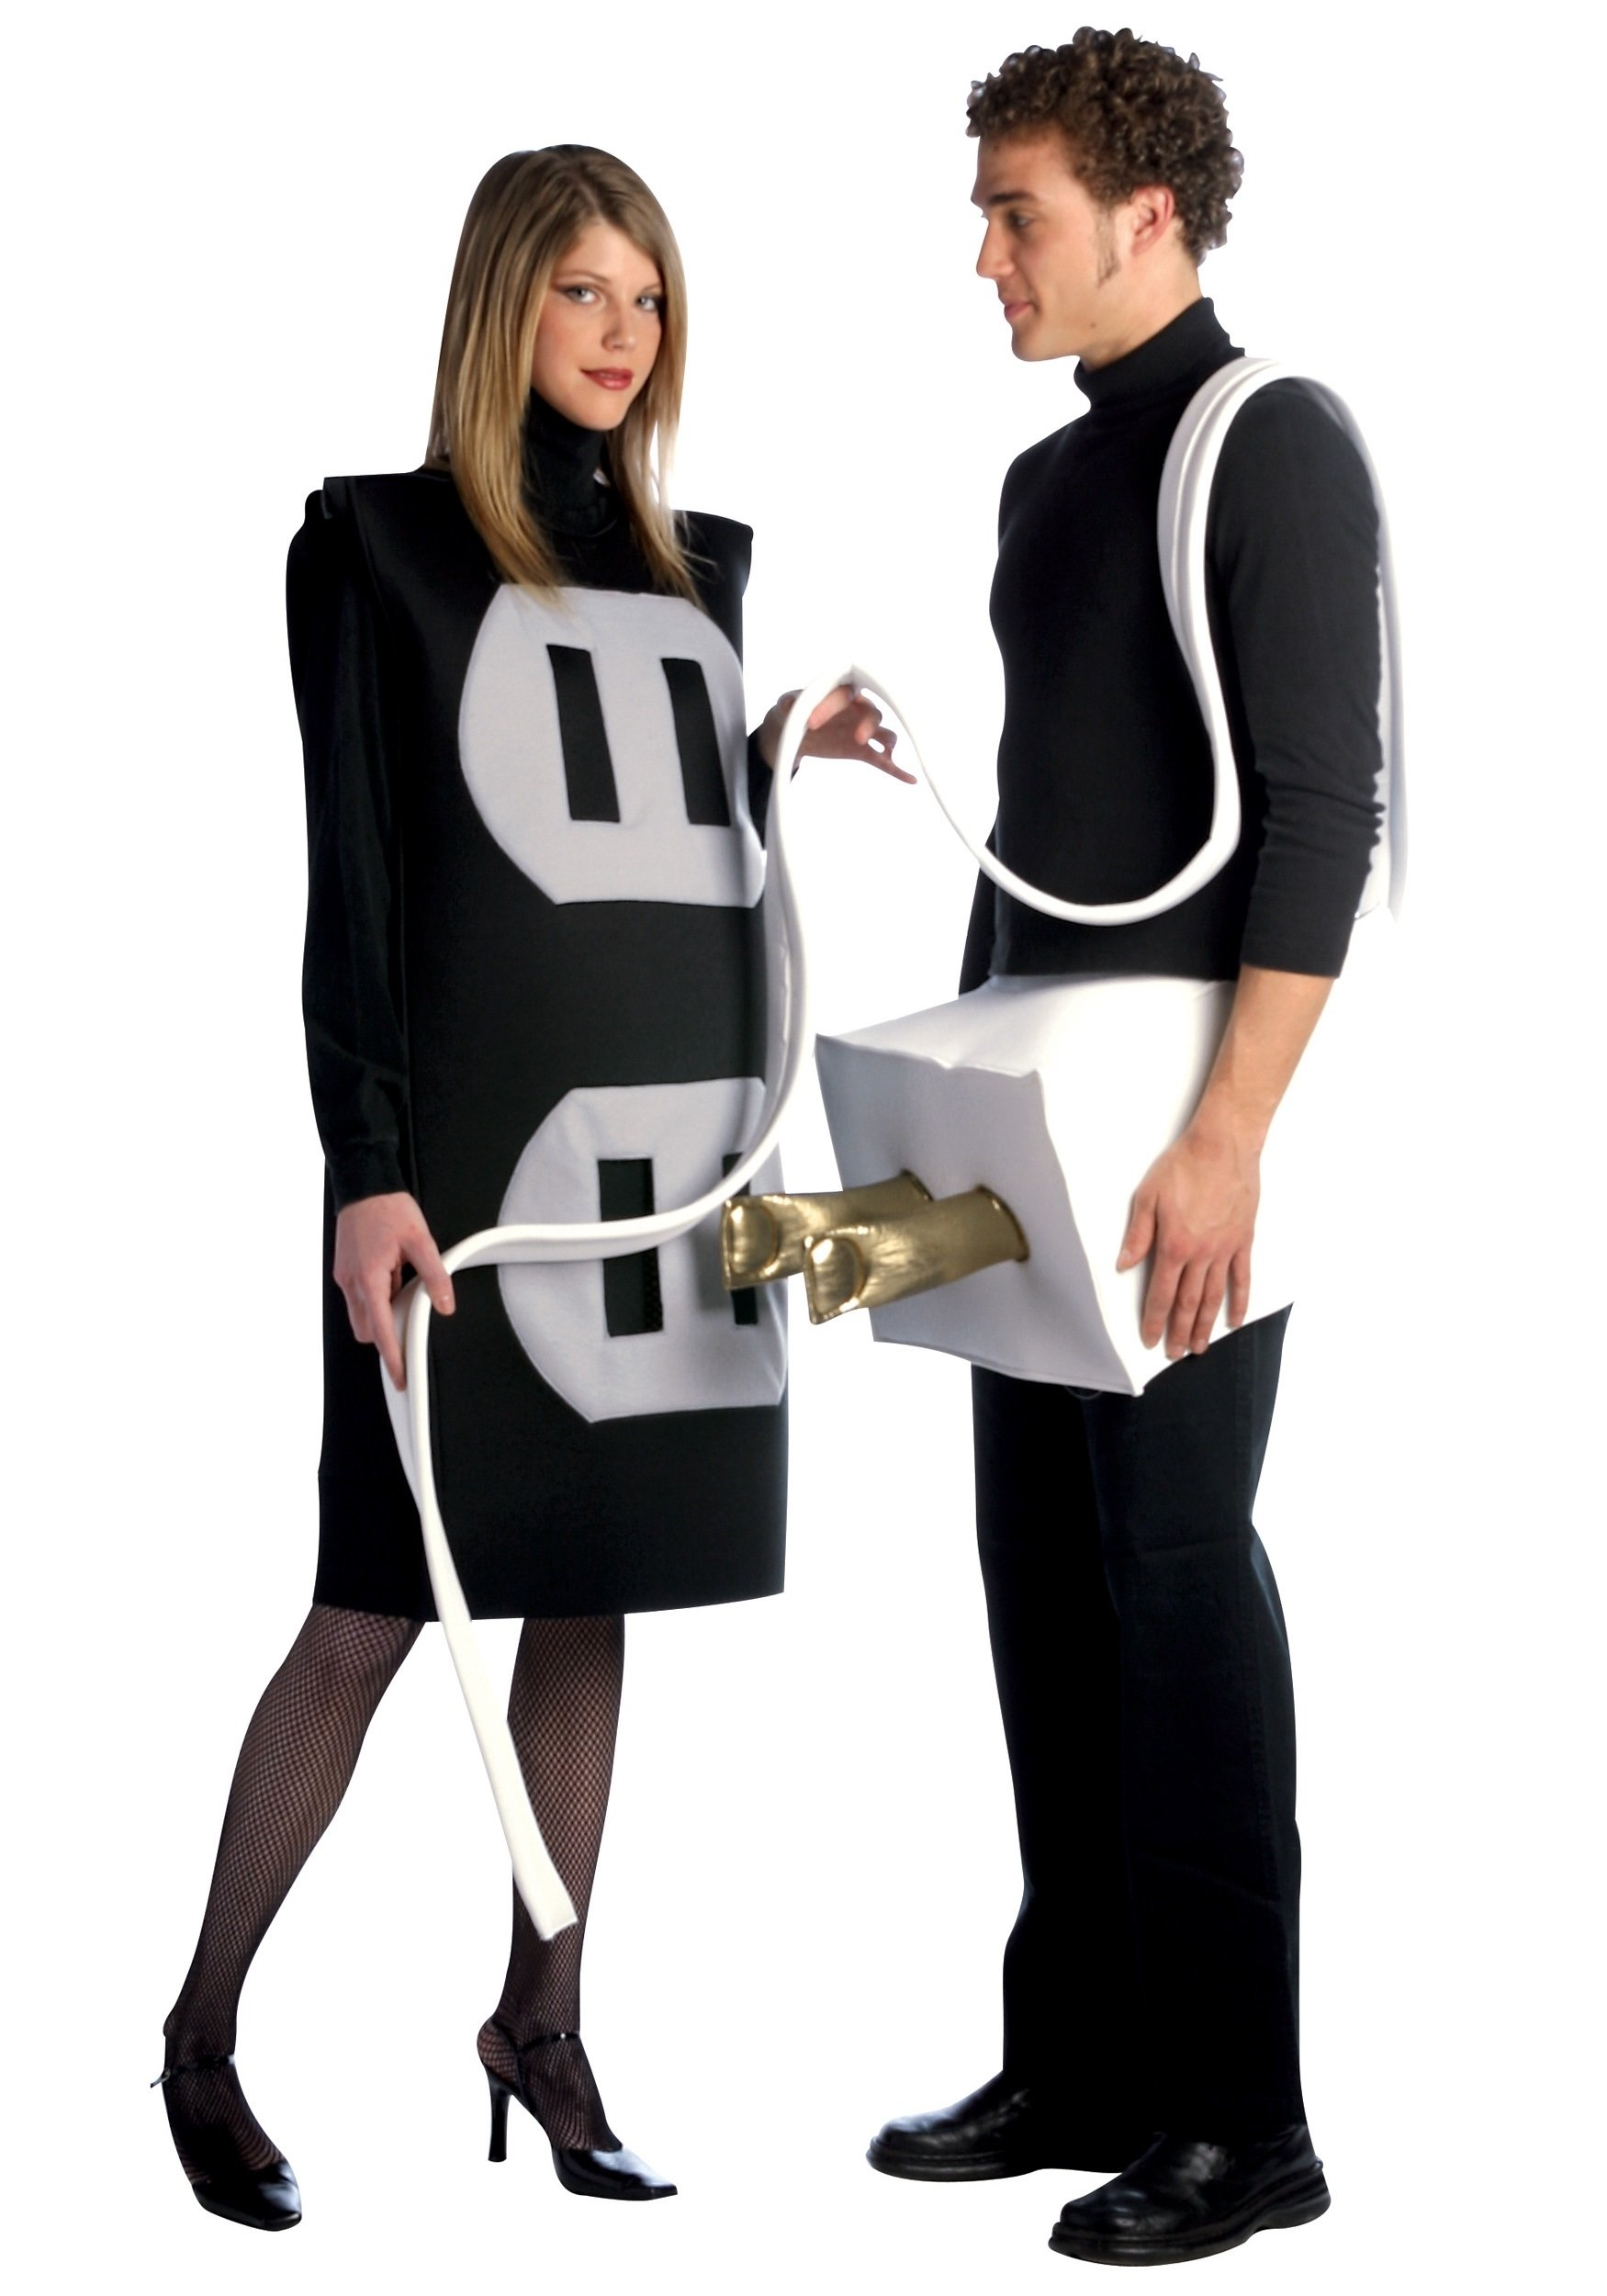 10 Great Sexy Couples Halloween Costume Ideas plug and socket costume funny couples costume ideas 2 2020